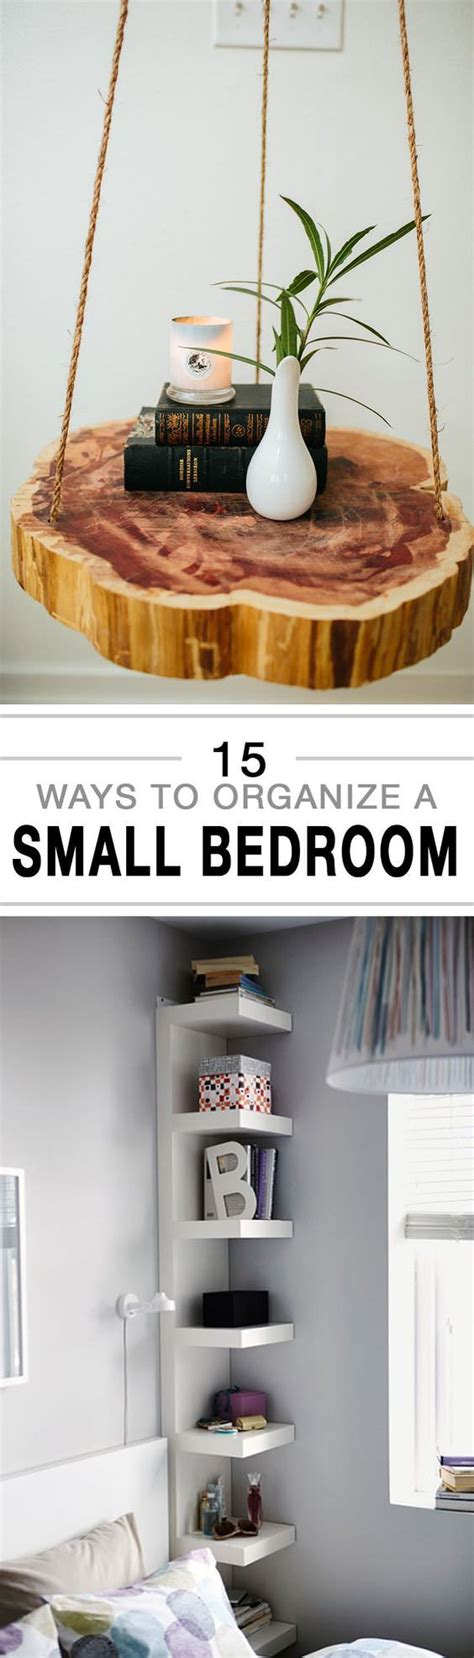 organize a small bedroom 15 ways to organize a small bedroom house